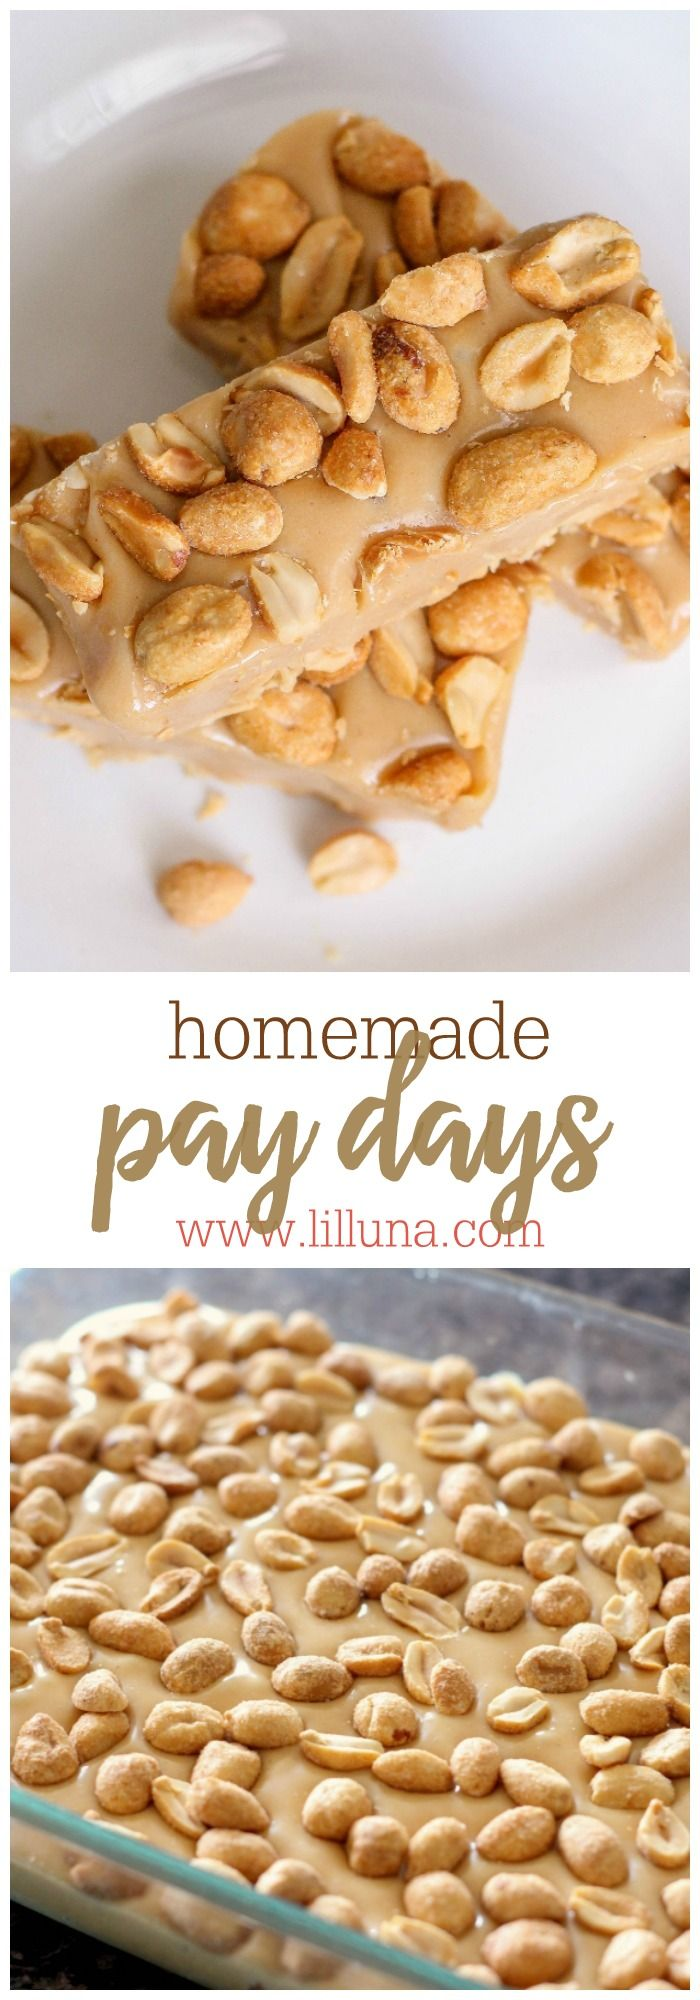 Homemade Pay Days - so easy to make and they taste just like it! { lilluna.com } Recipe includes peanuts, peanut butter chips, mini marshmallows and sweetened condensed milk.